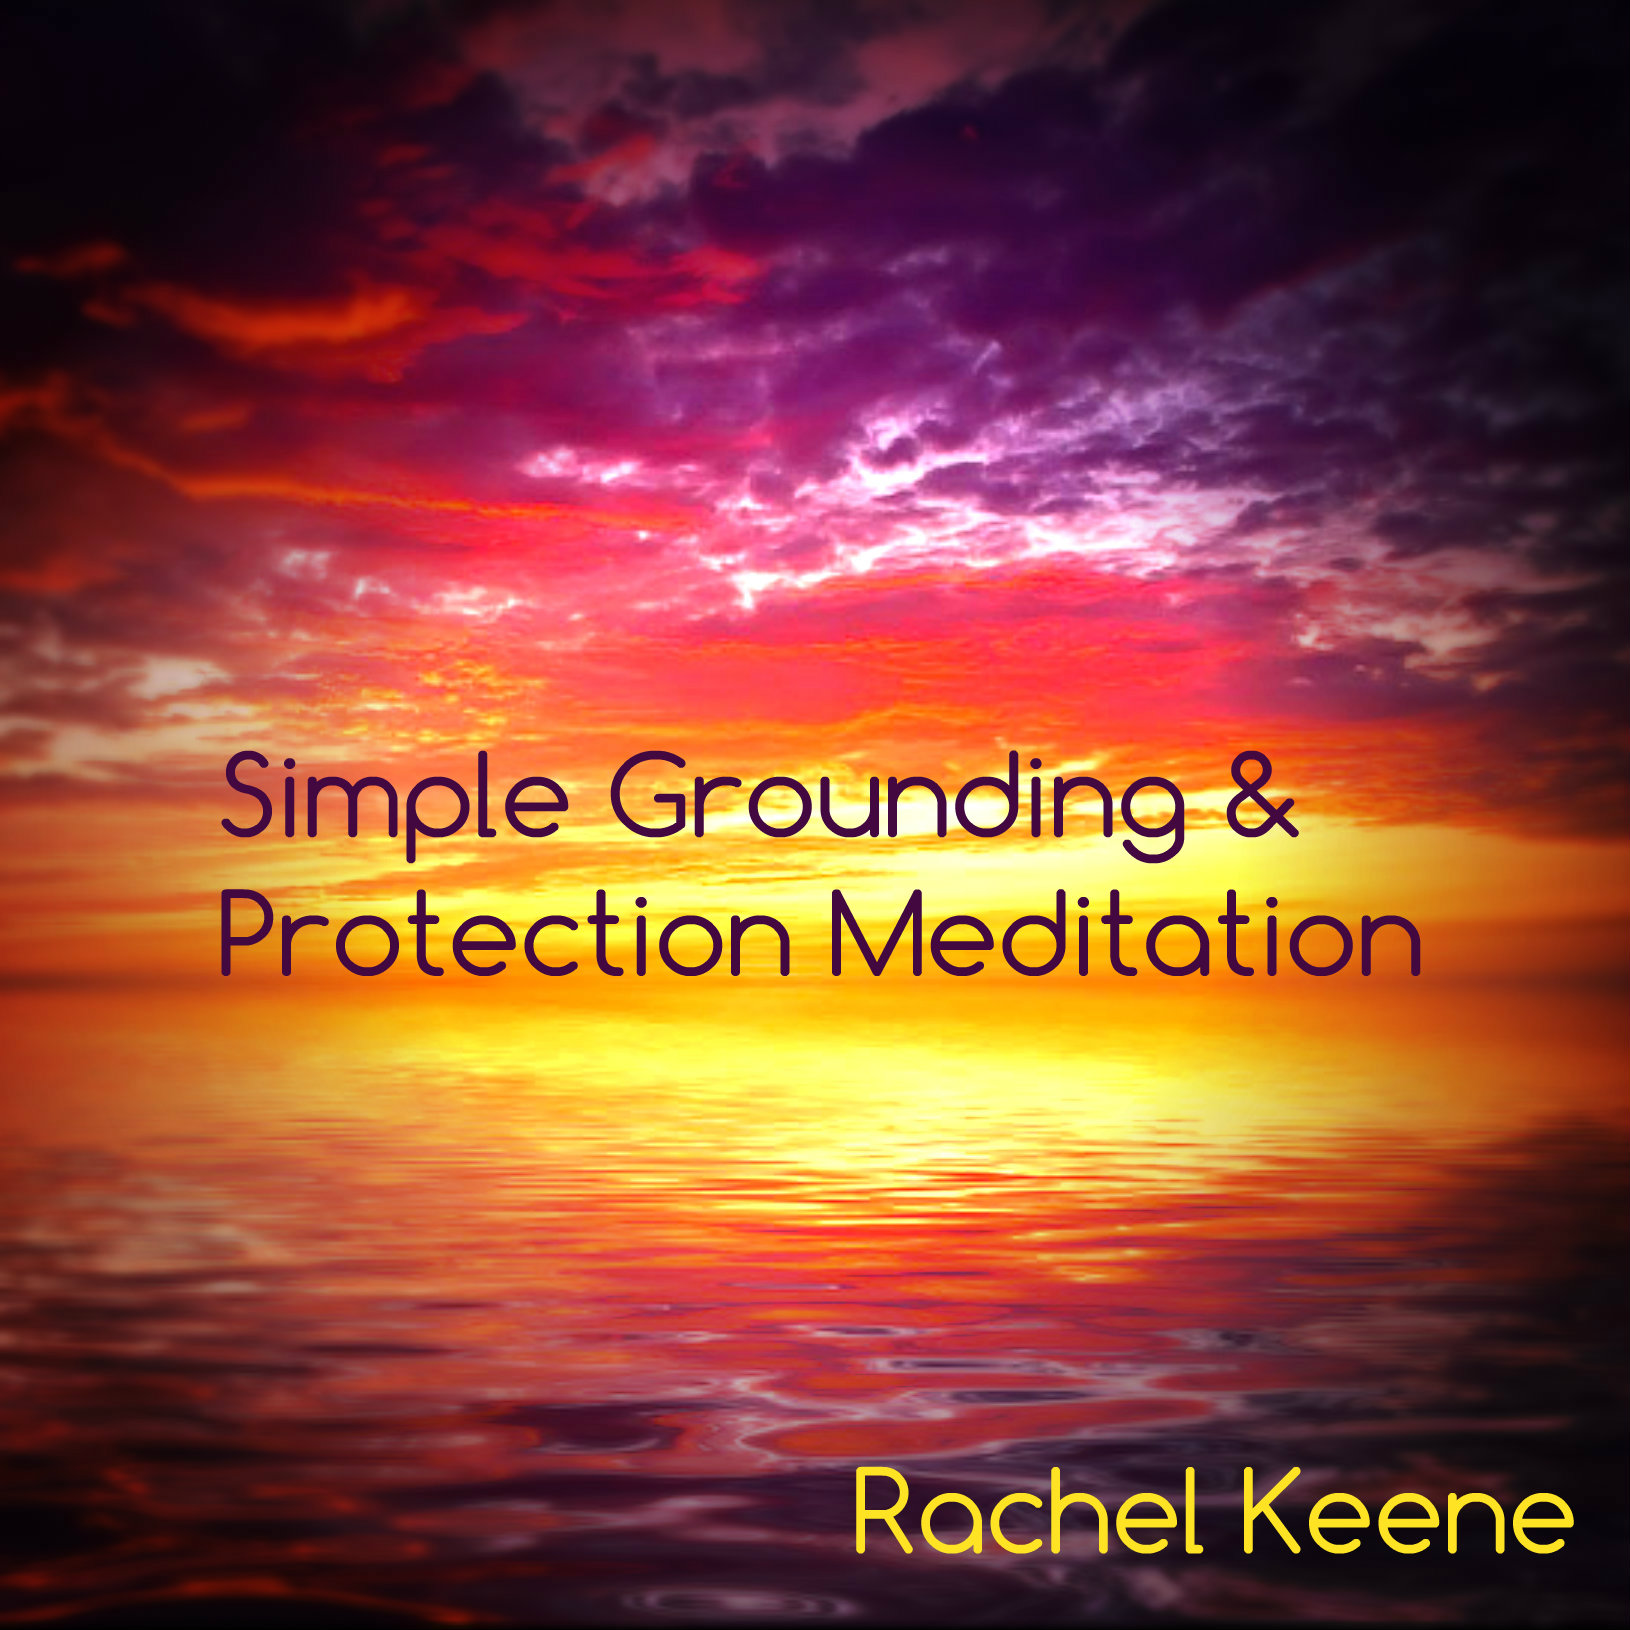 Simple Grounding and Protection Guided Meditation - Download Now